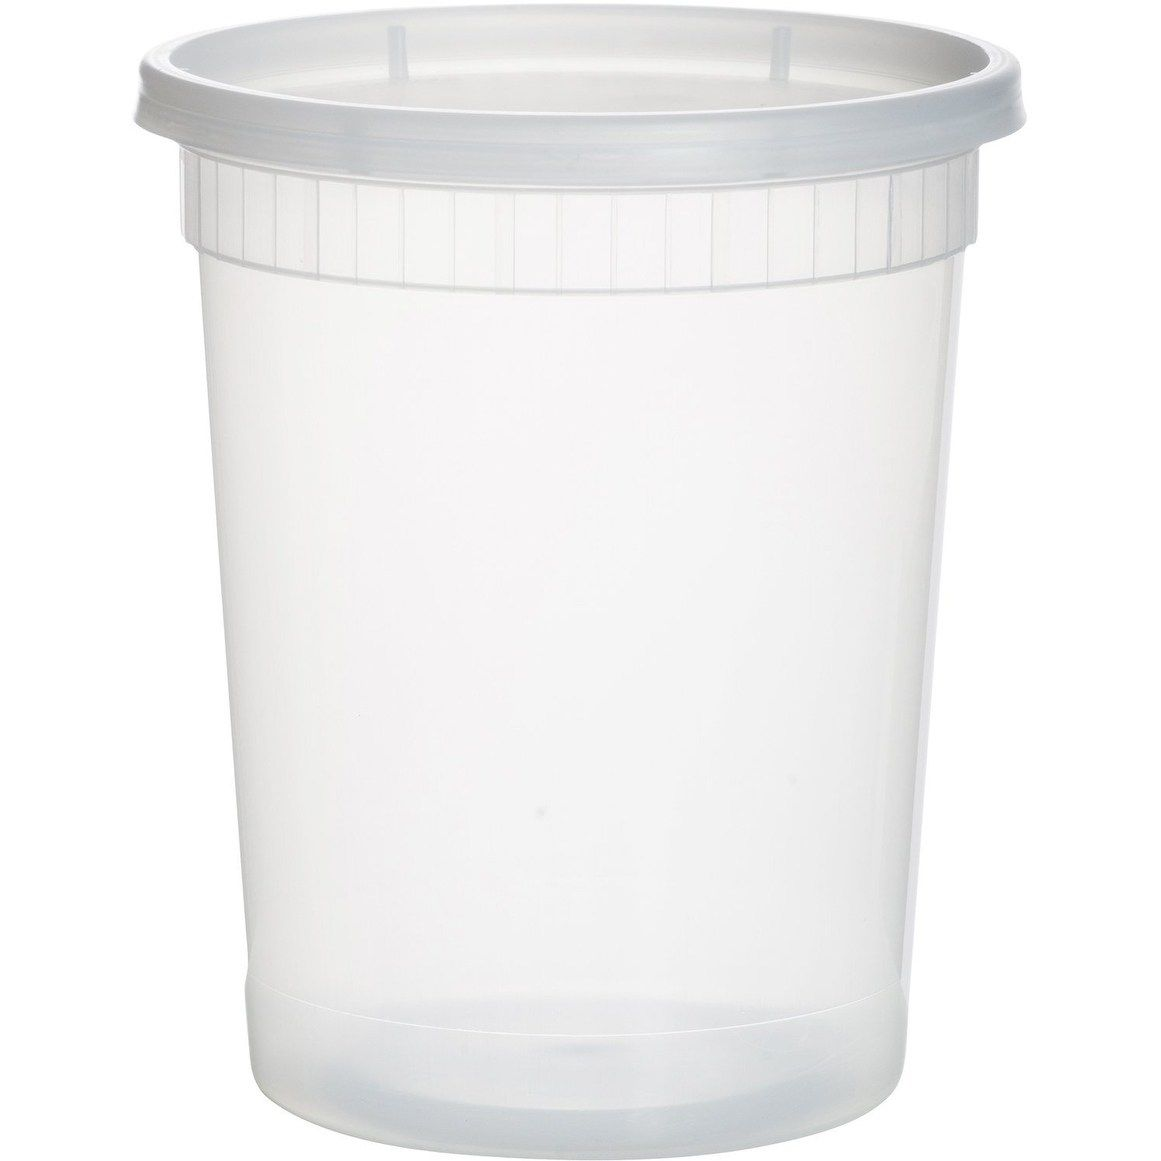 Plastic Containers For Lunch Large Food Container With Lid Leak